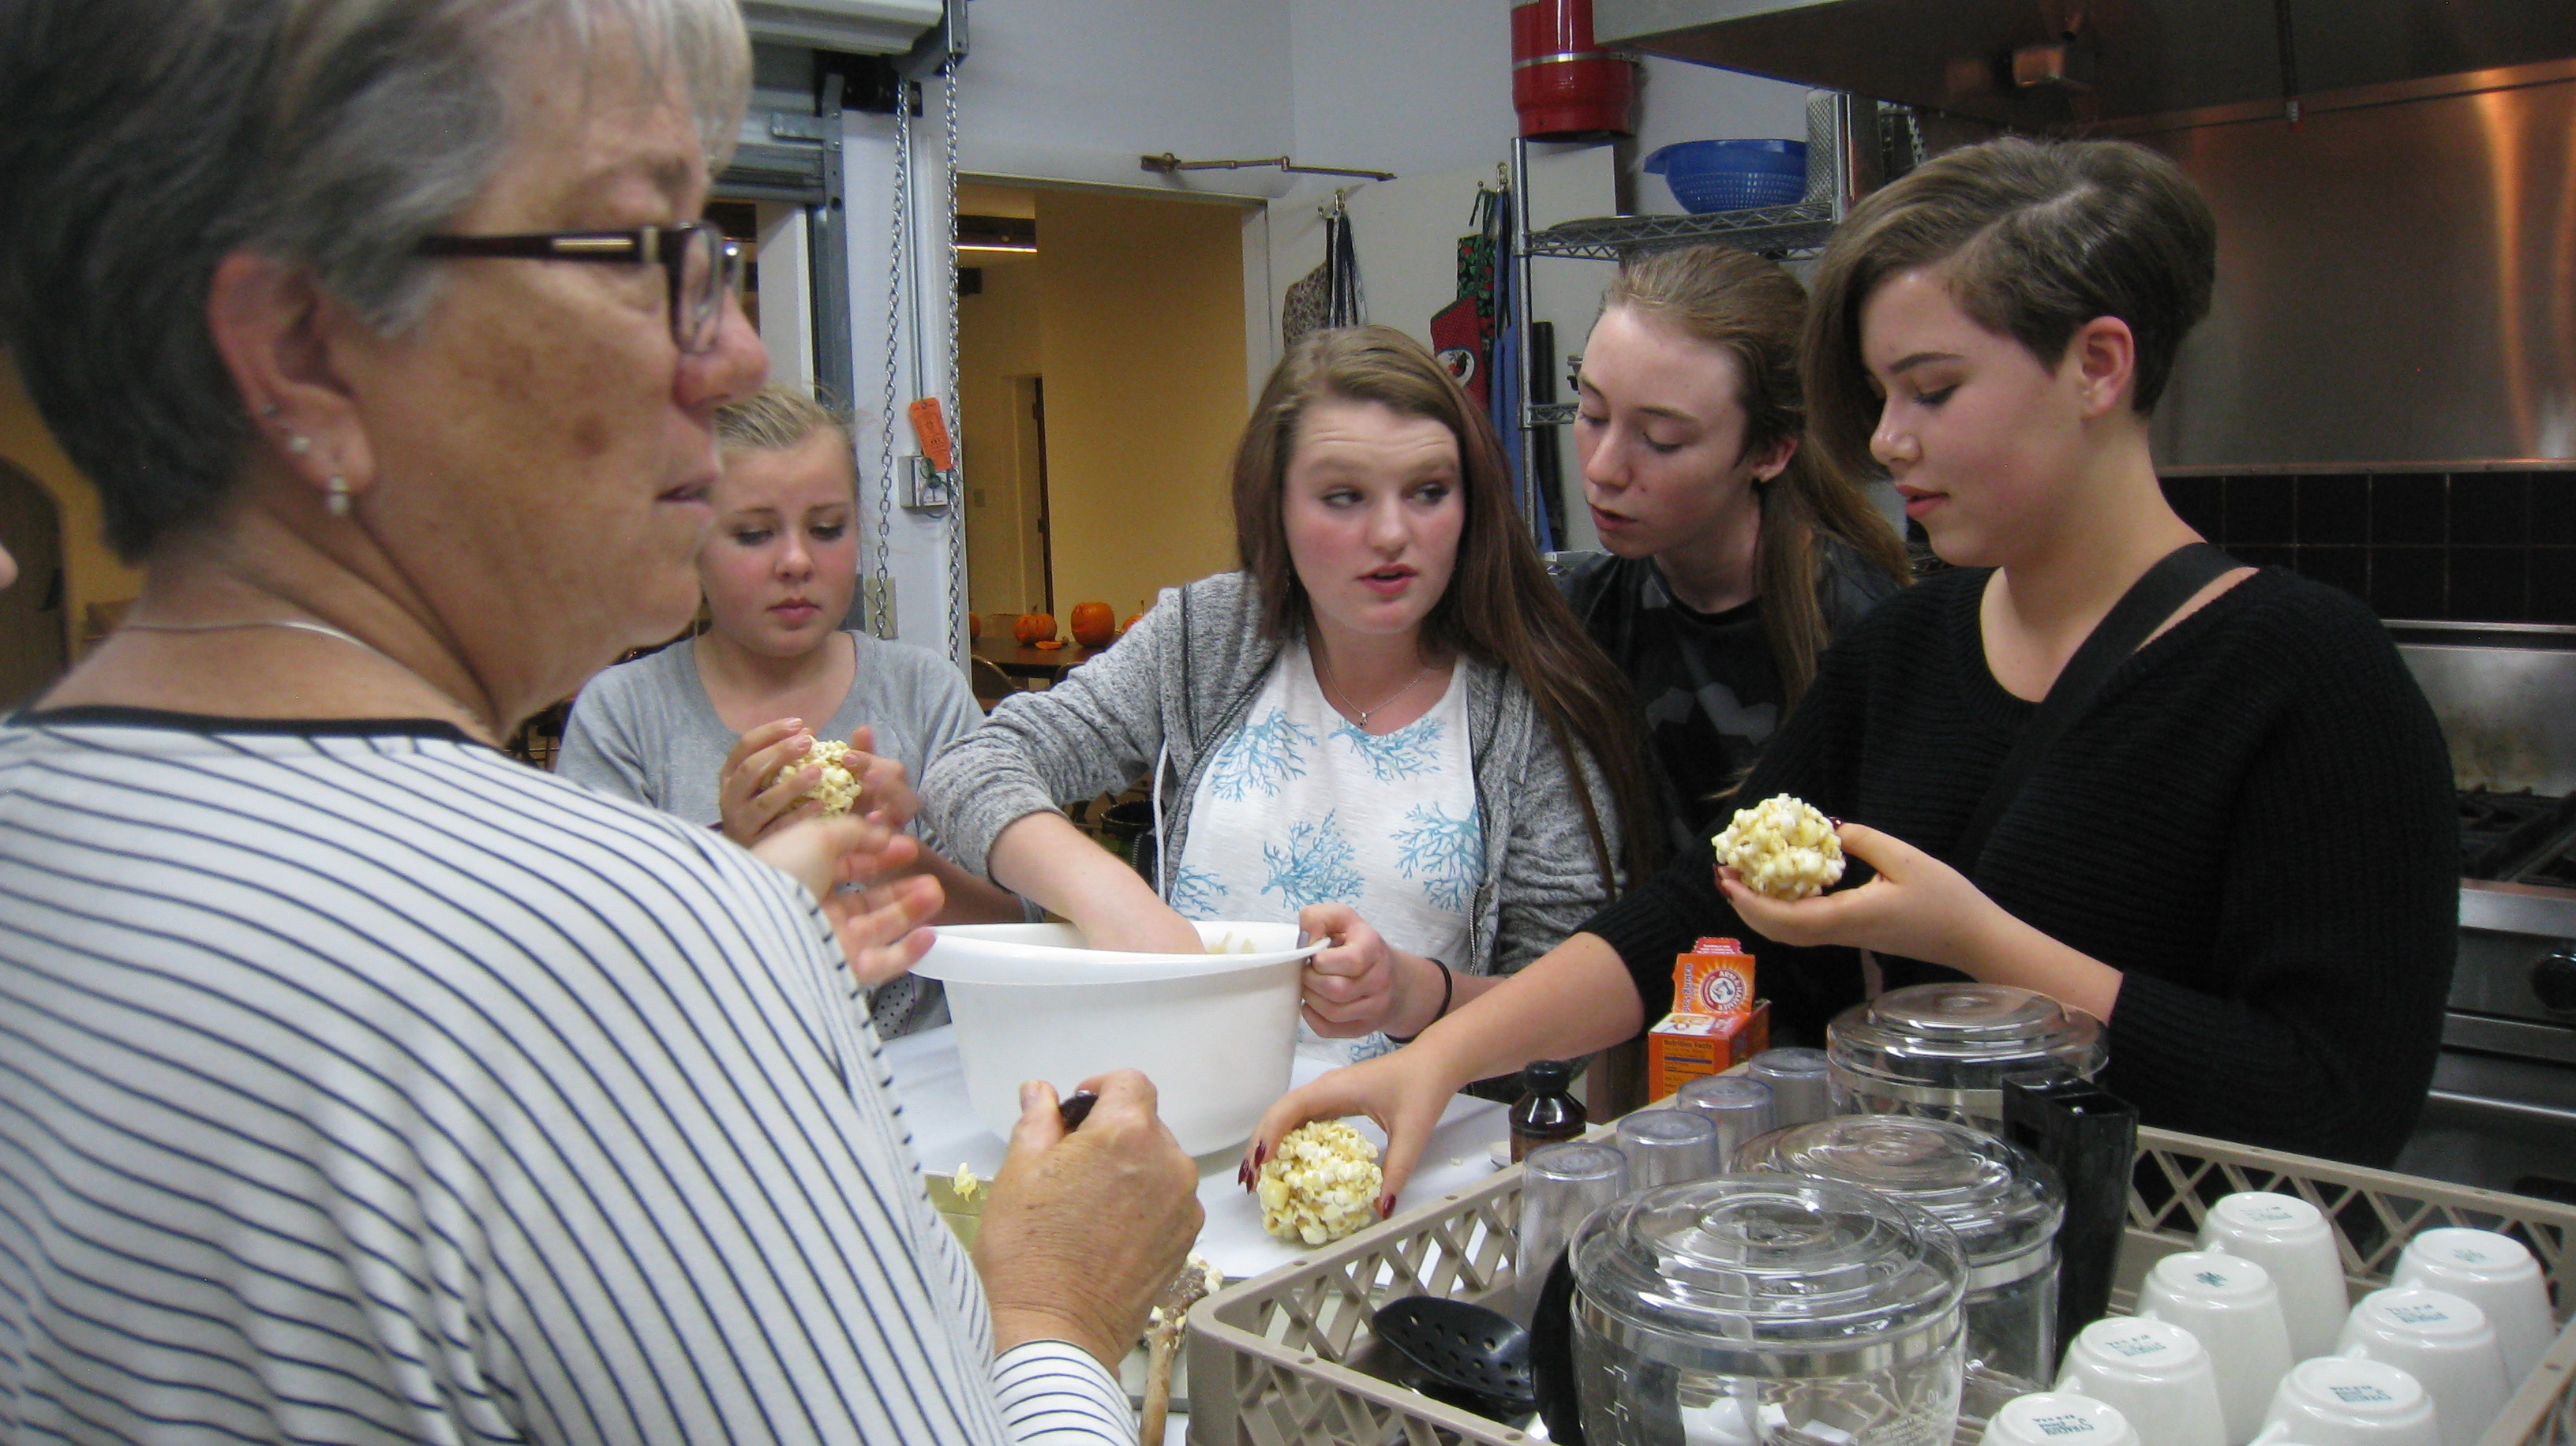 Youth group baking in the kitchen